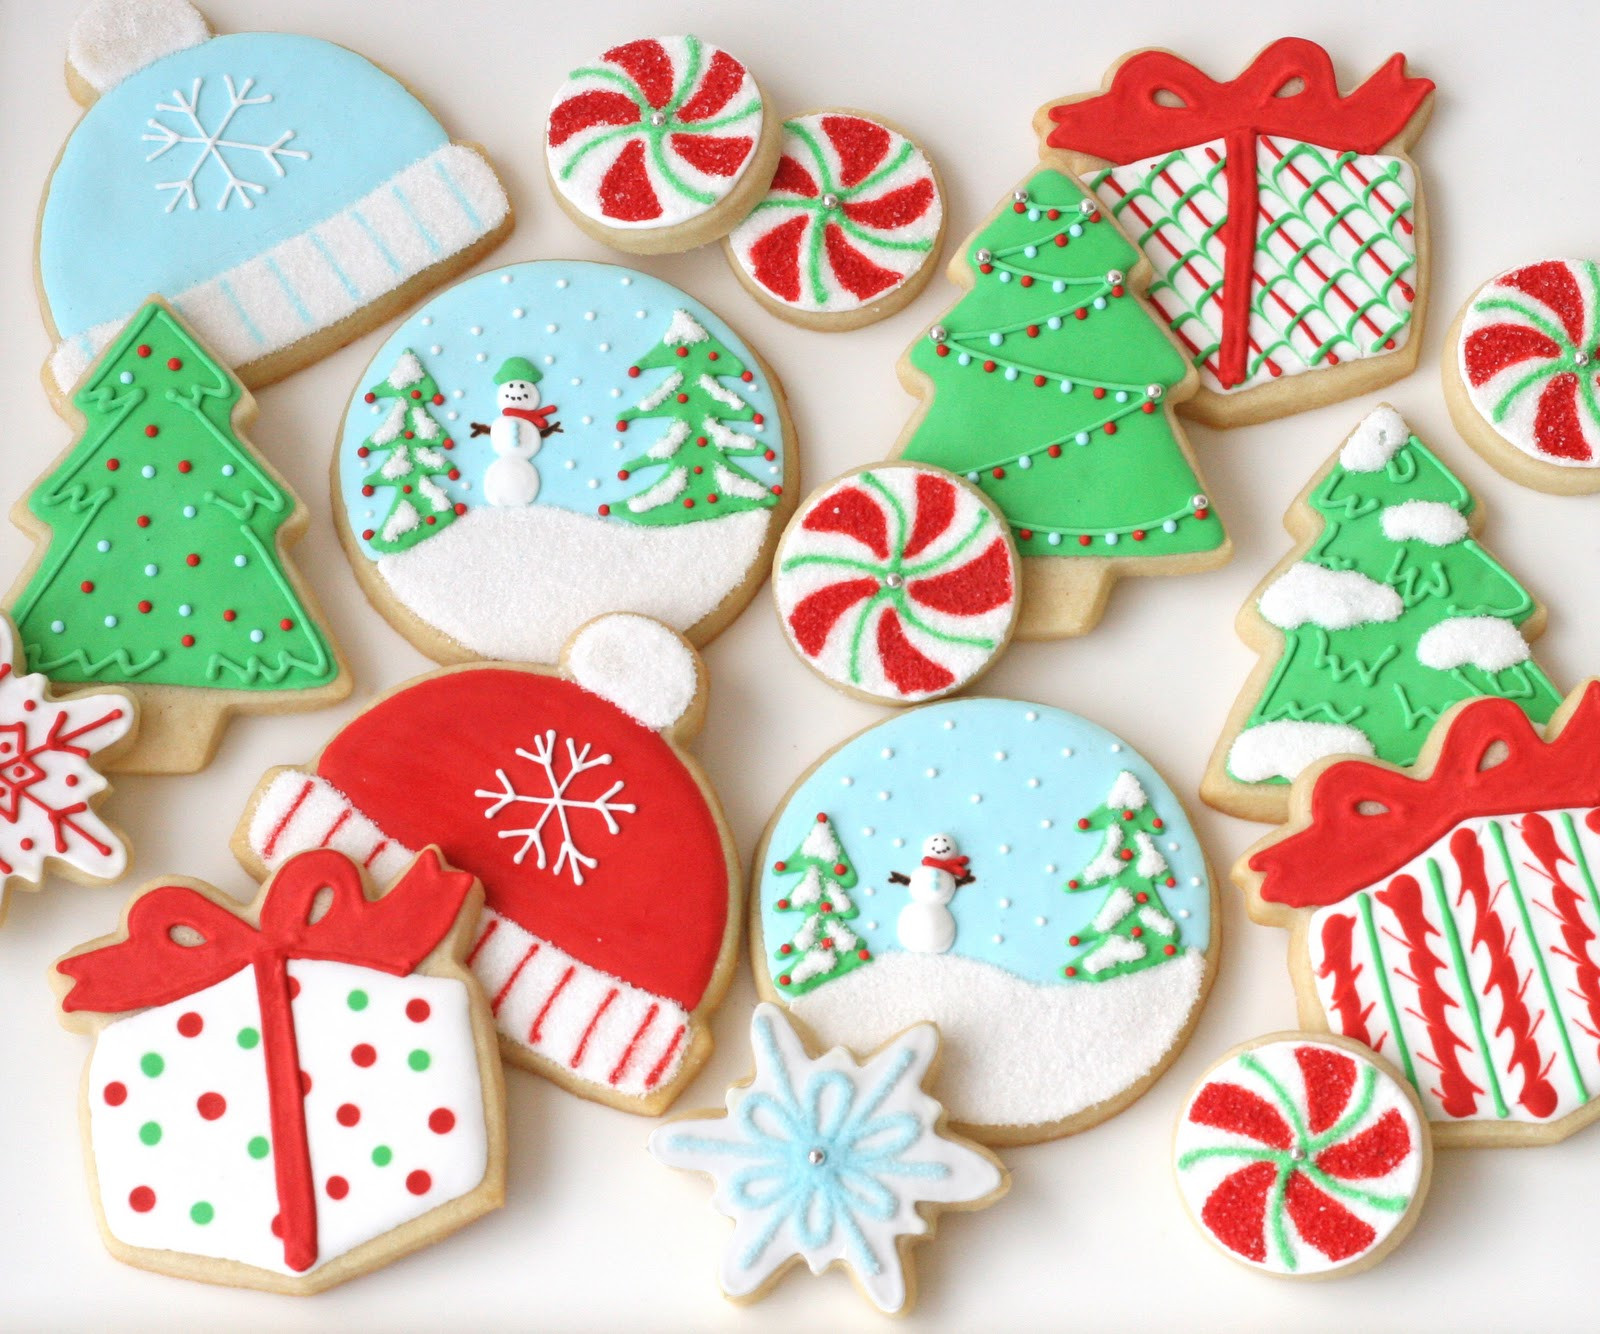 Frosting For Christmas Cutout Cookies  Christmas Cookies Galore Glorious Treats